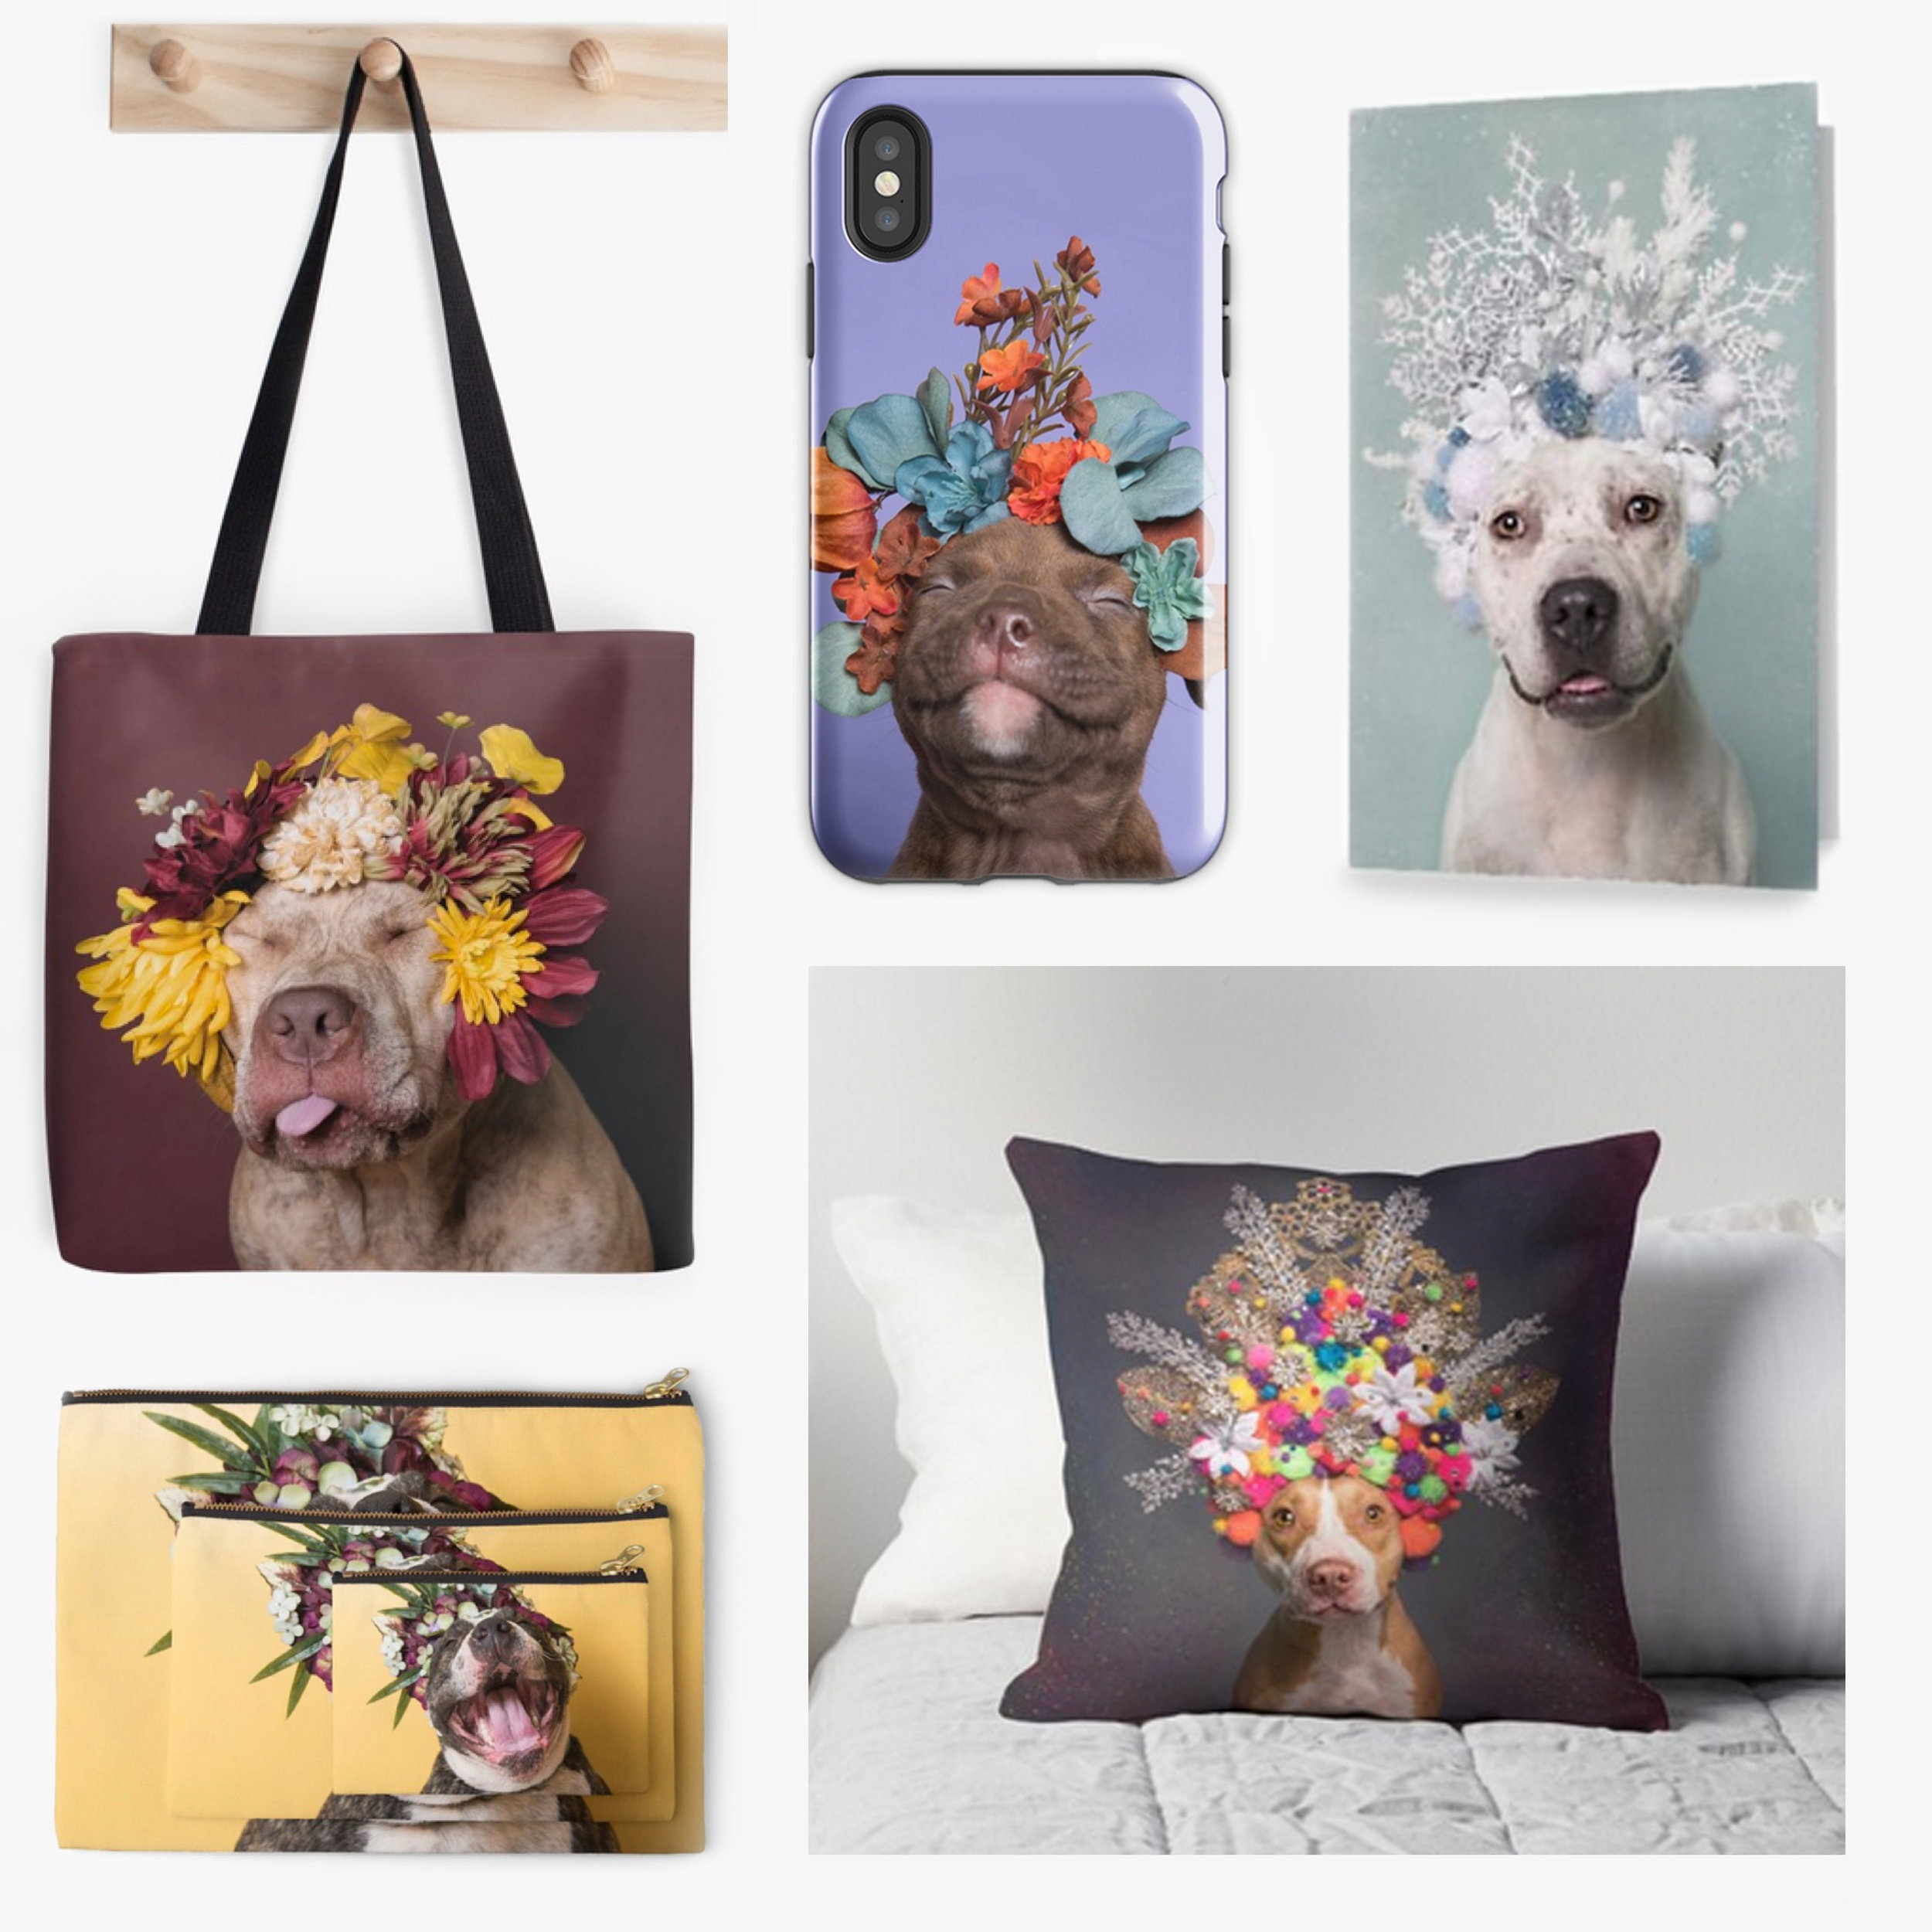 Greeting cards, Tote bags, Phone cases, Clothing and more - I offer a wide range of ethically sourced, durable, high quality products via my partner RedBubble. This is where you can get tote bags, zipped pouches, phone cases, pillows, clothing… (shipped worldwide). Here is a guided tour of the collection, and click on the button below to access the RedBubble shop directly.